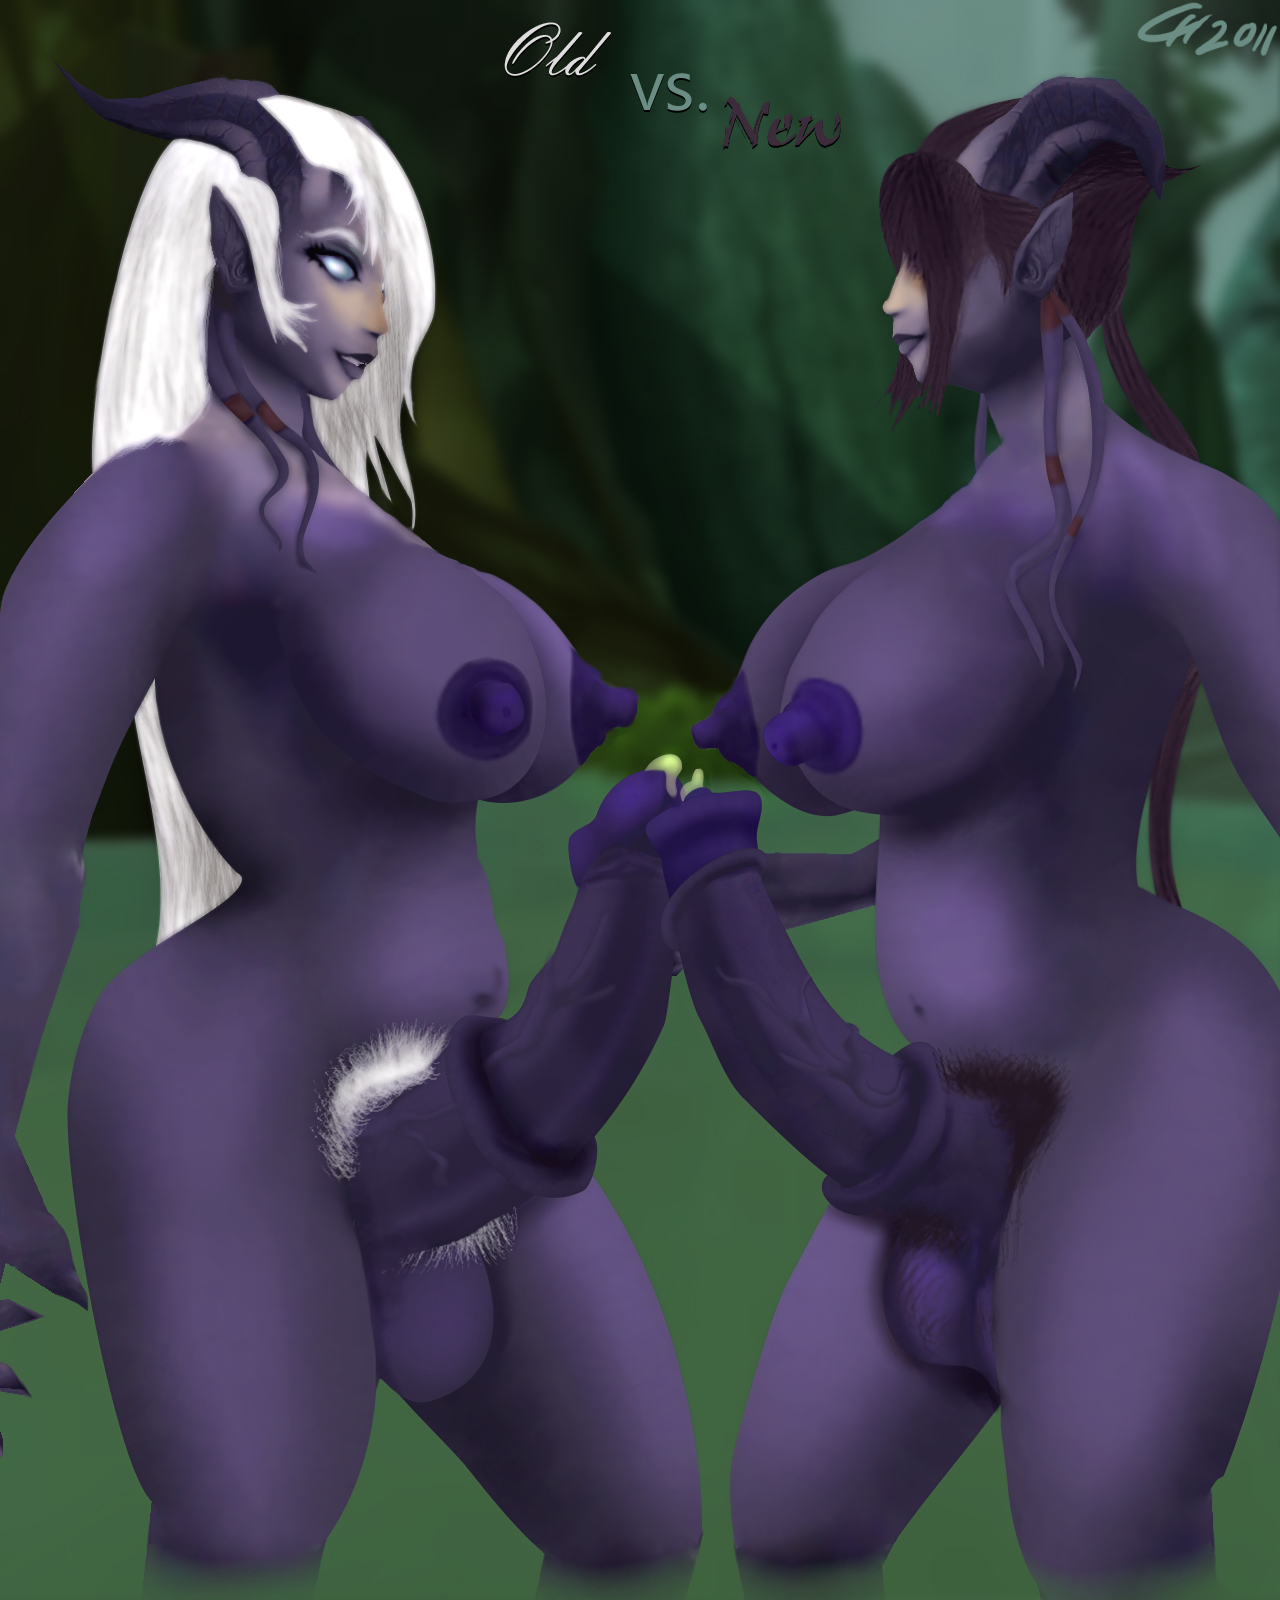 Draenei porno picsix exposed thumbs